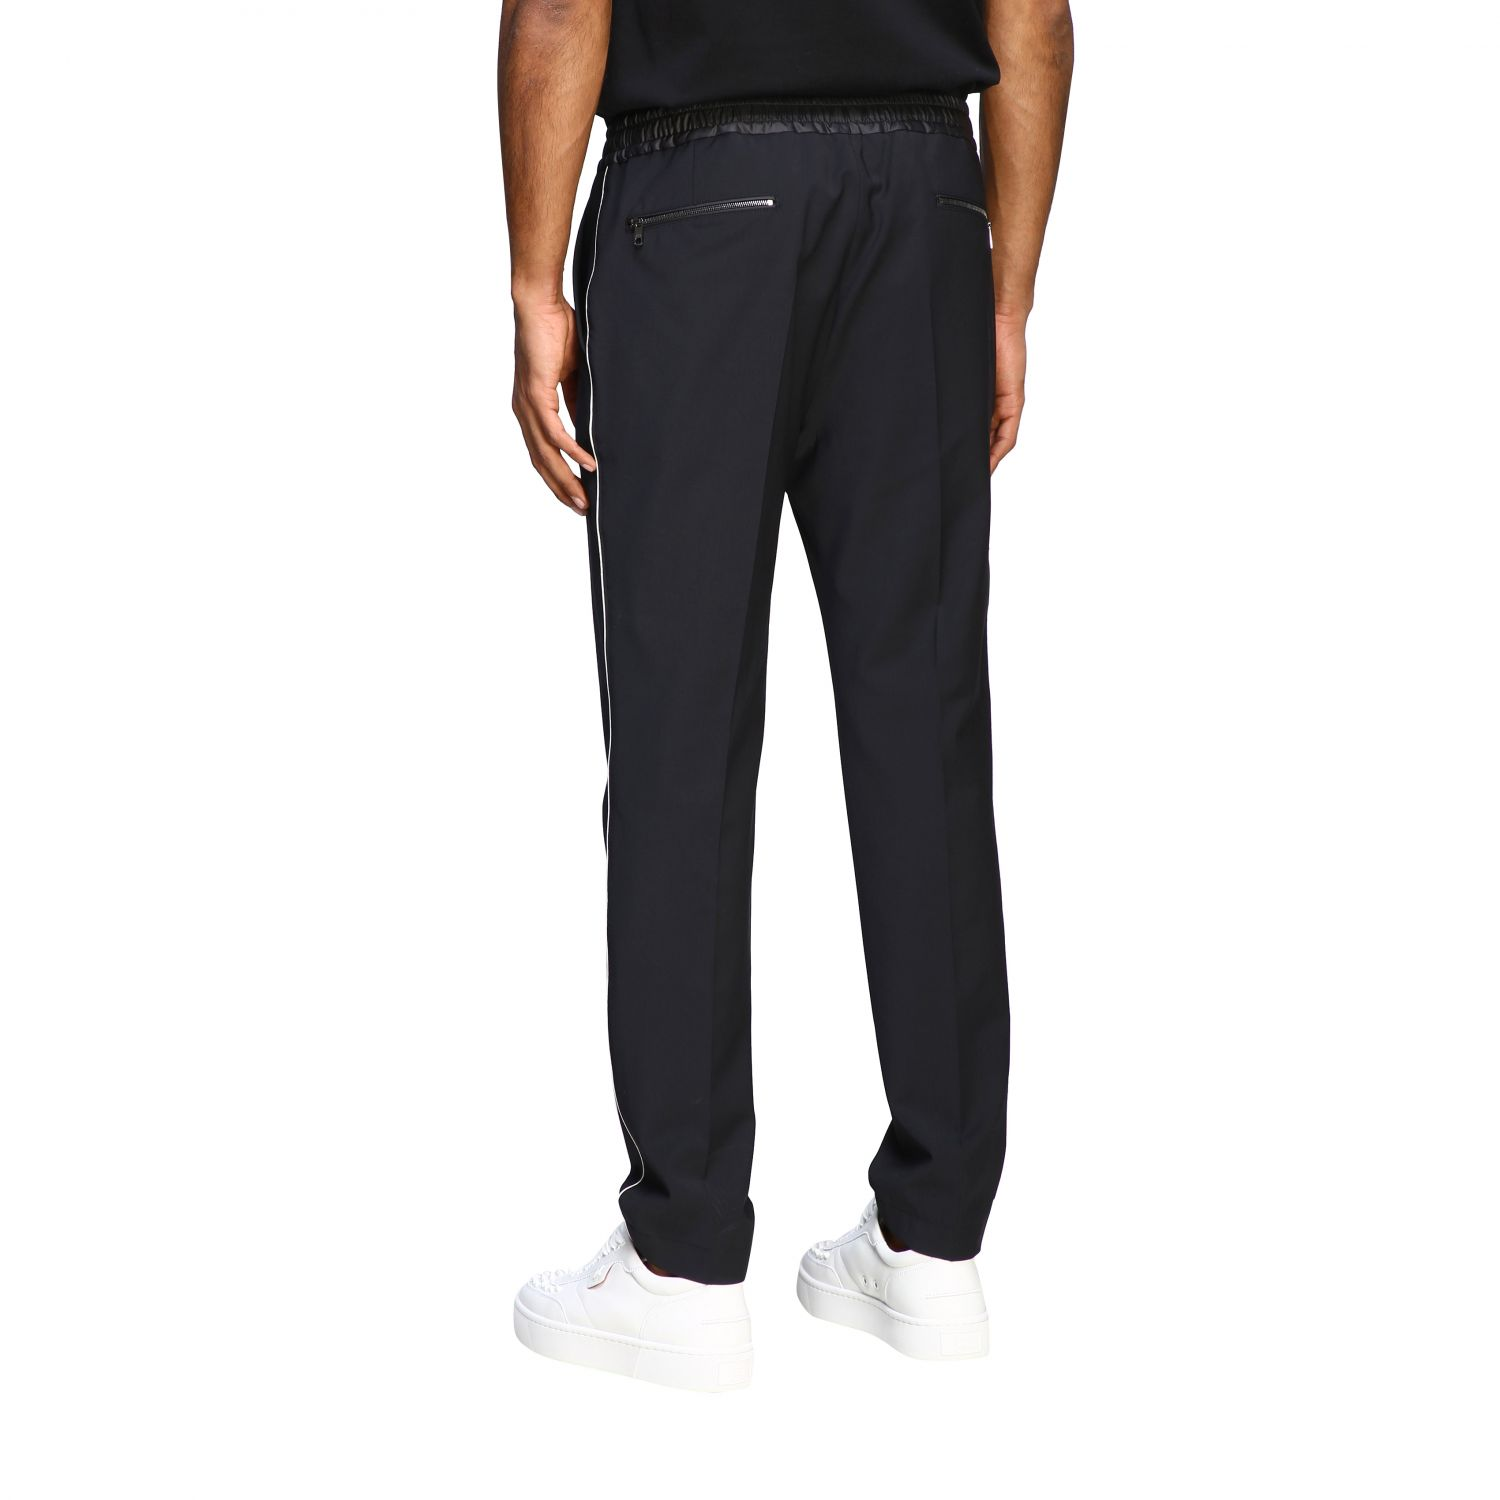 Pants Dolce & Gabbana: Dolce & Gabbana jogging style trousers with colored edges black 2